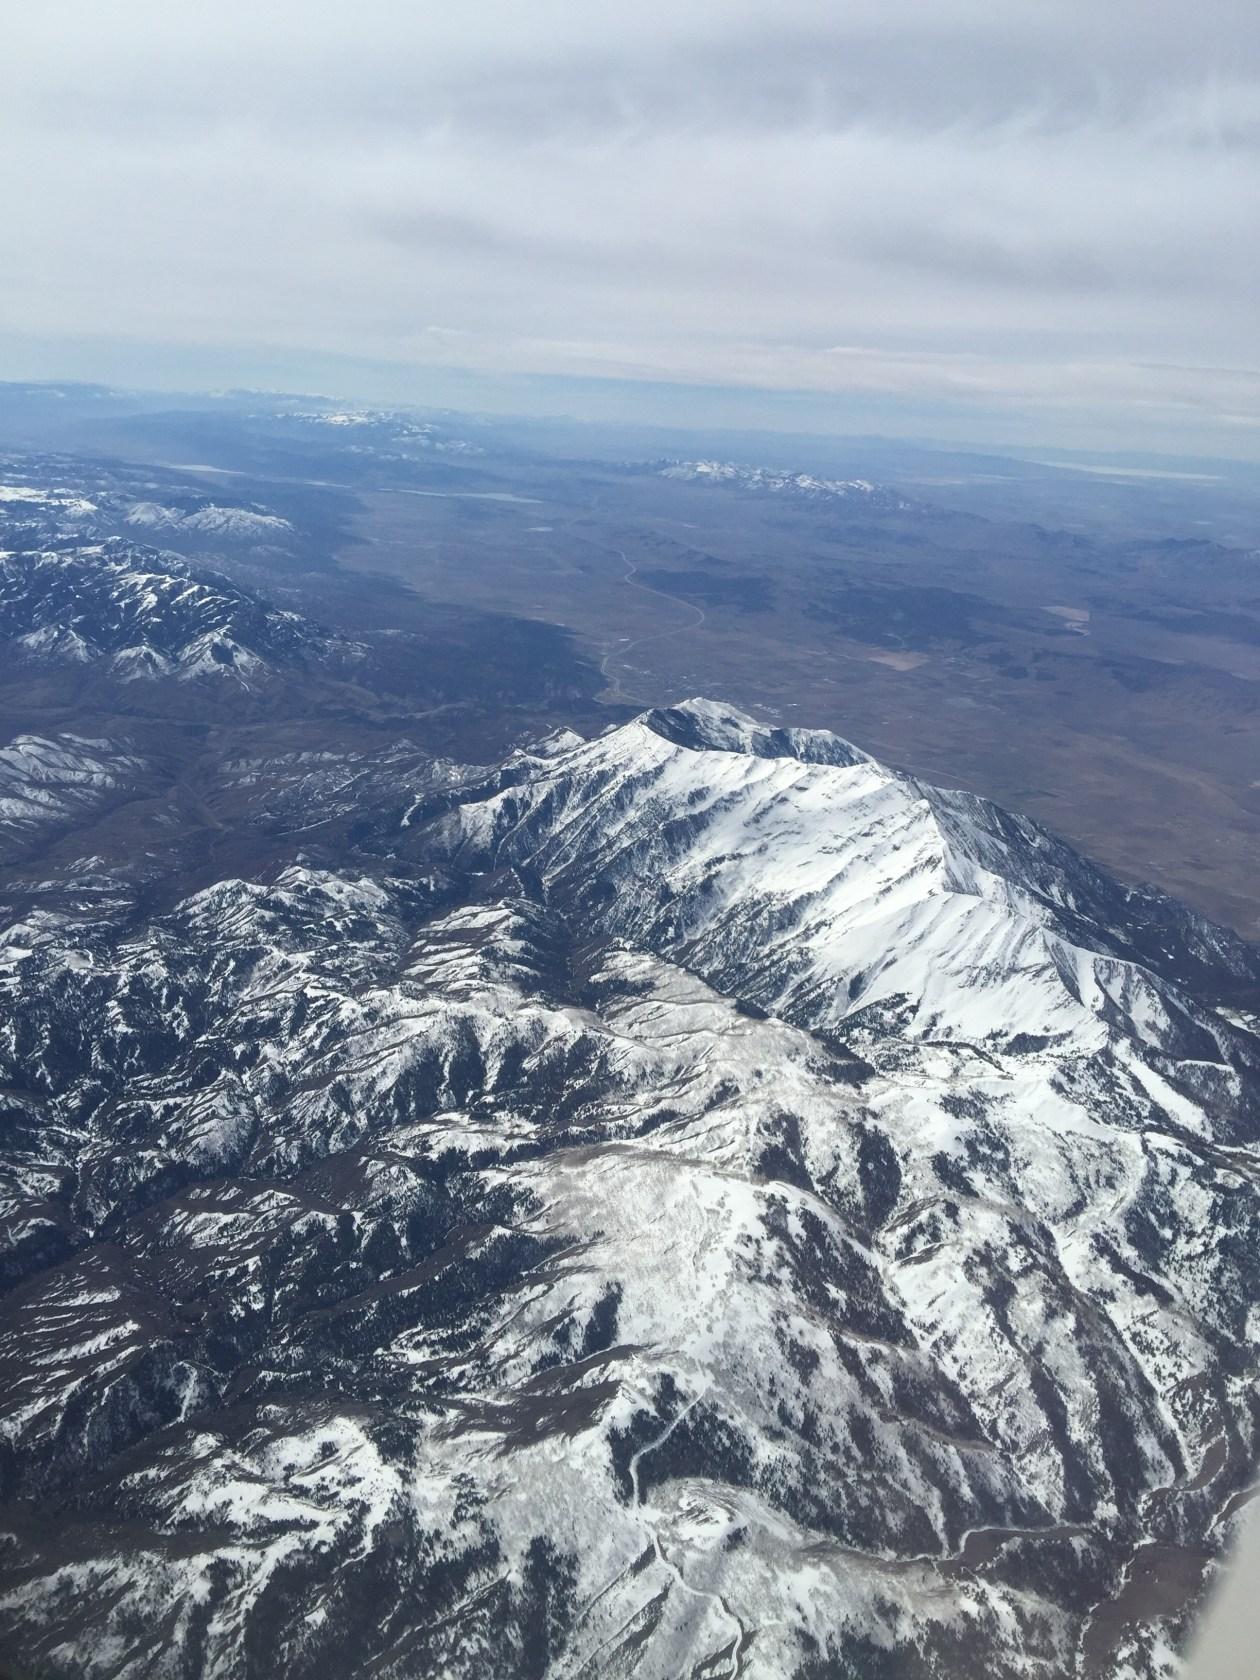 Flying over mountains and desserts (Utah, Arizona)